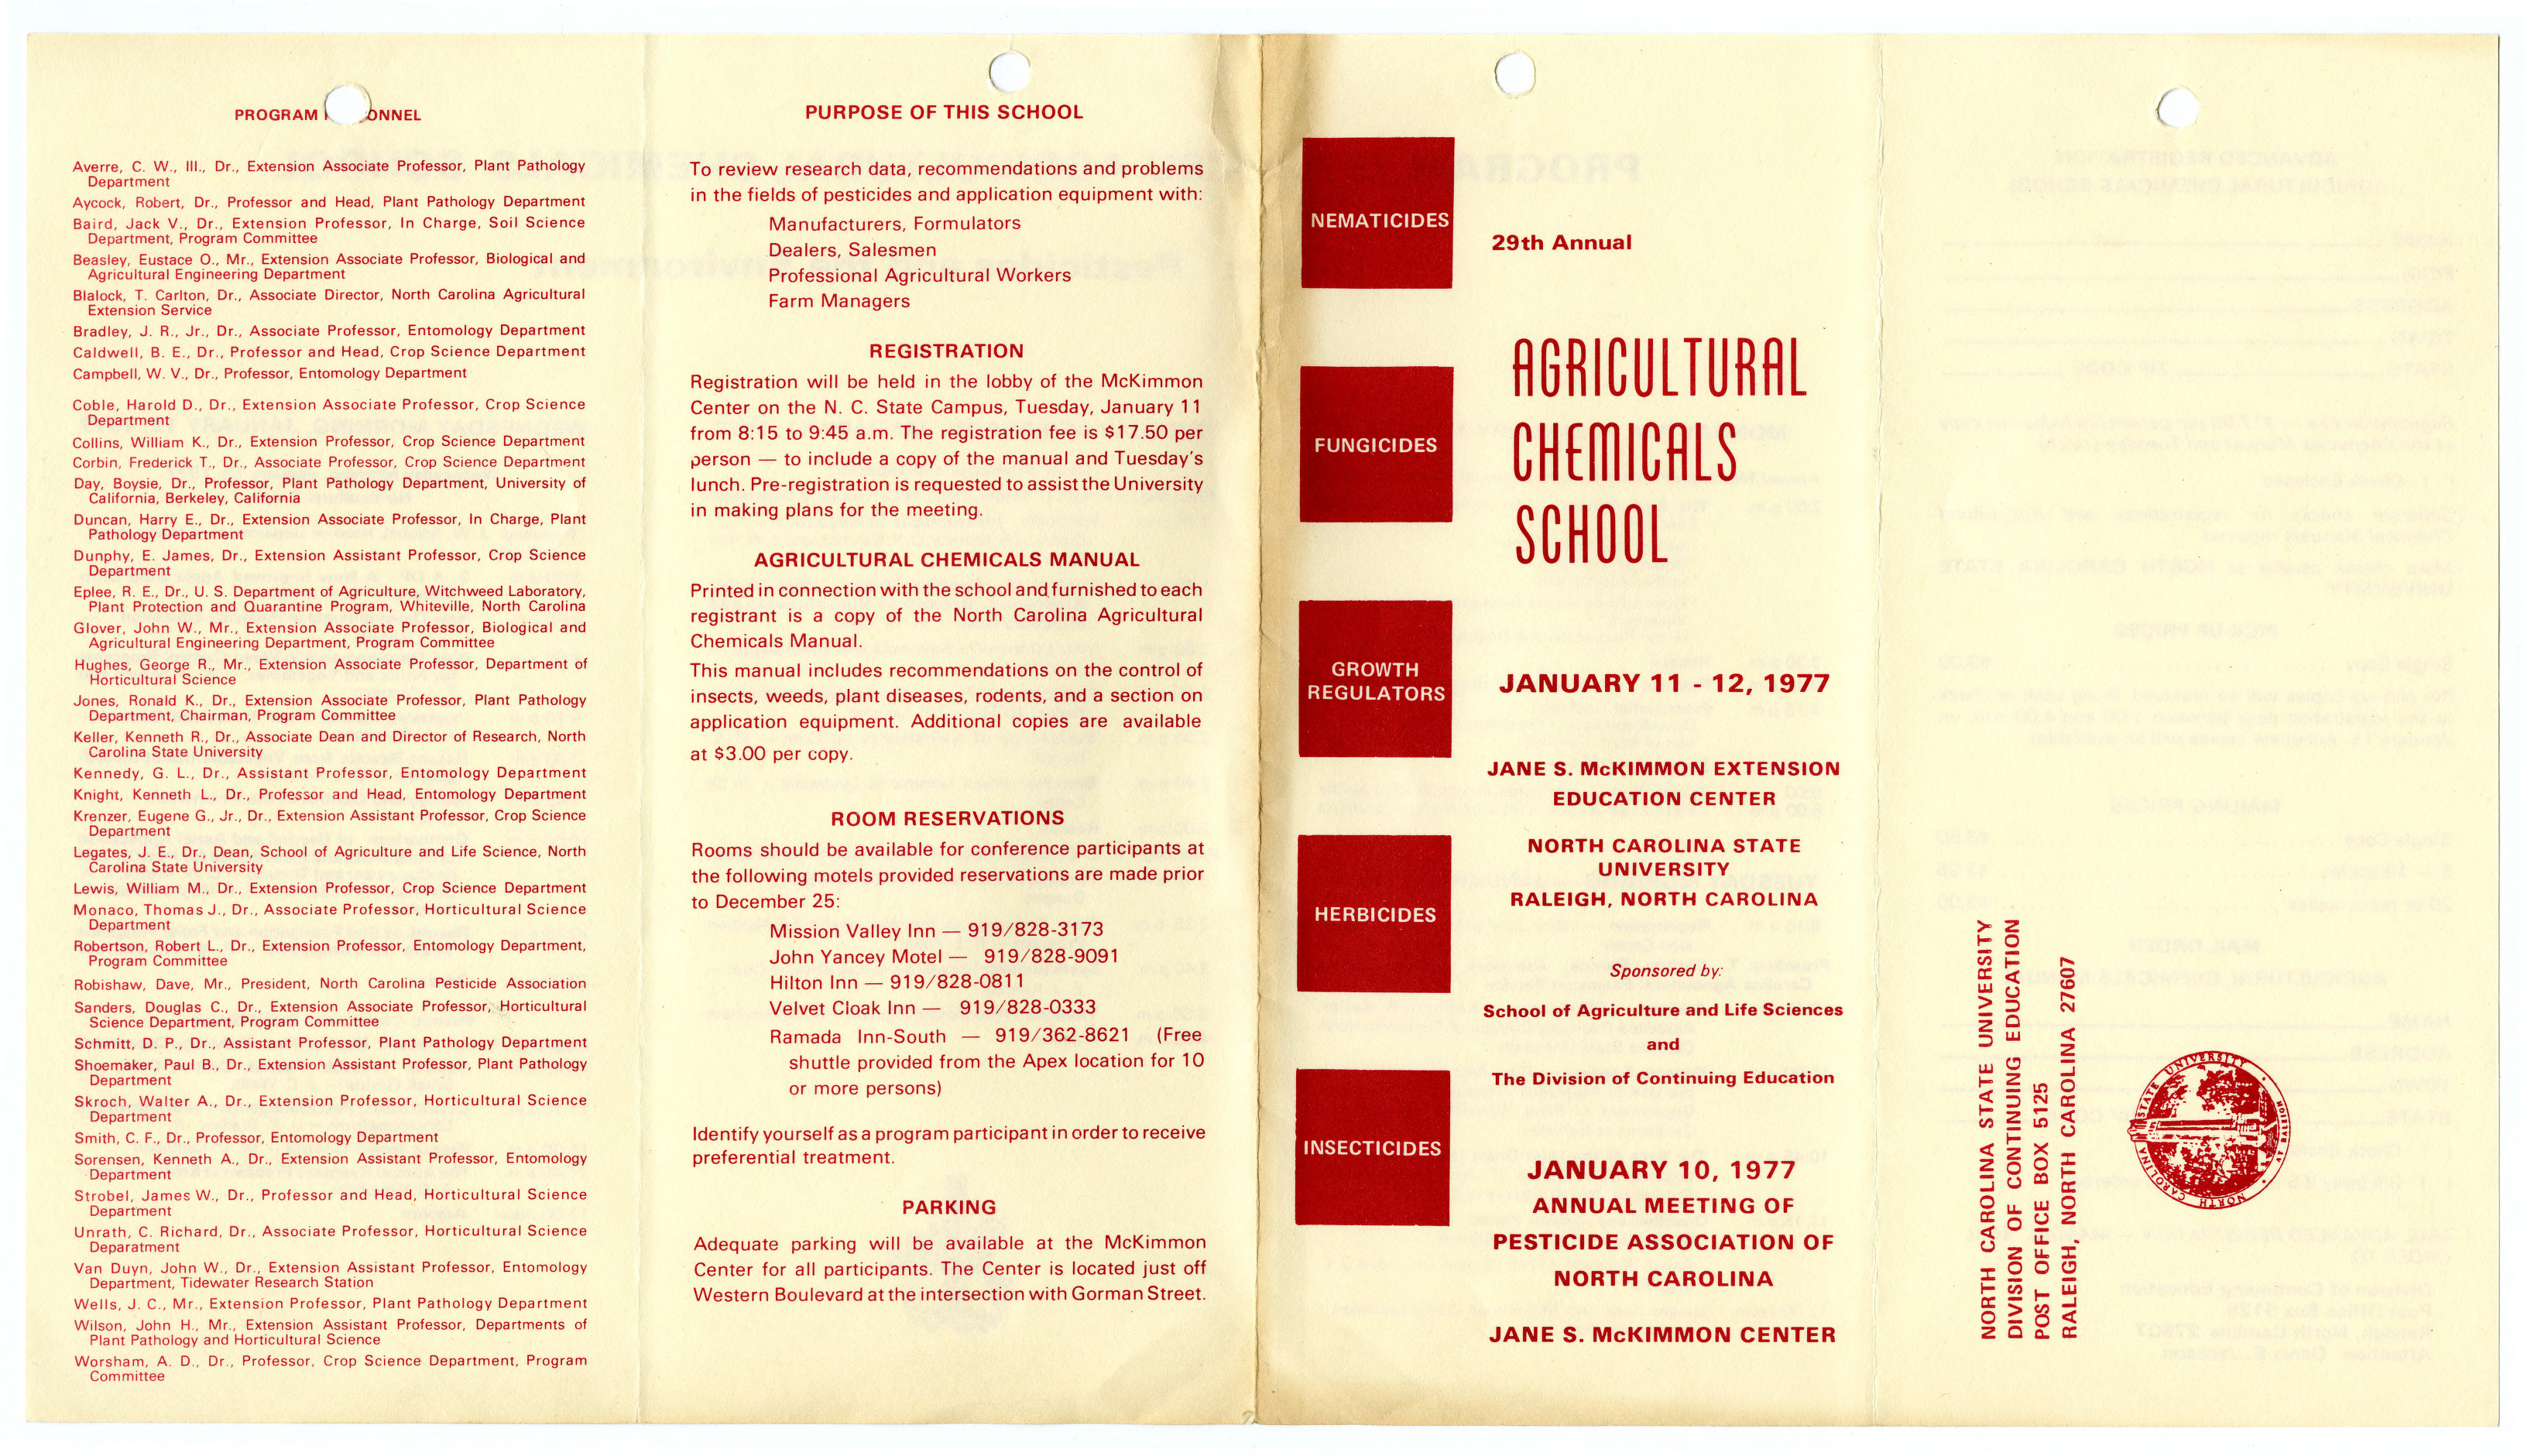 Agricultural Chemicals School annual event, 1976-1977